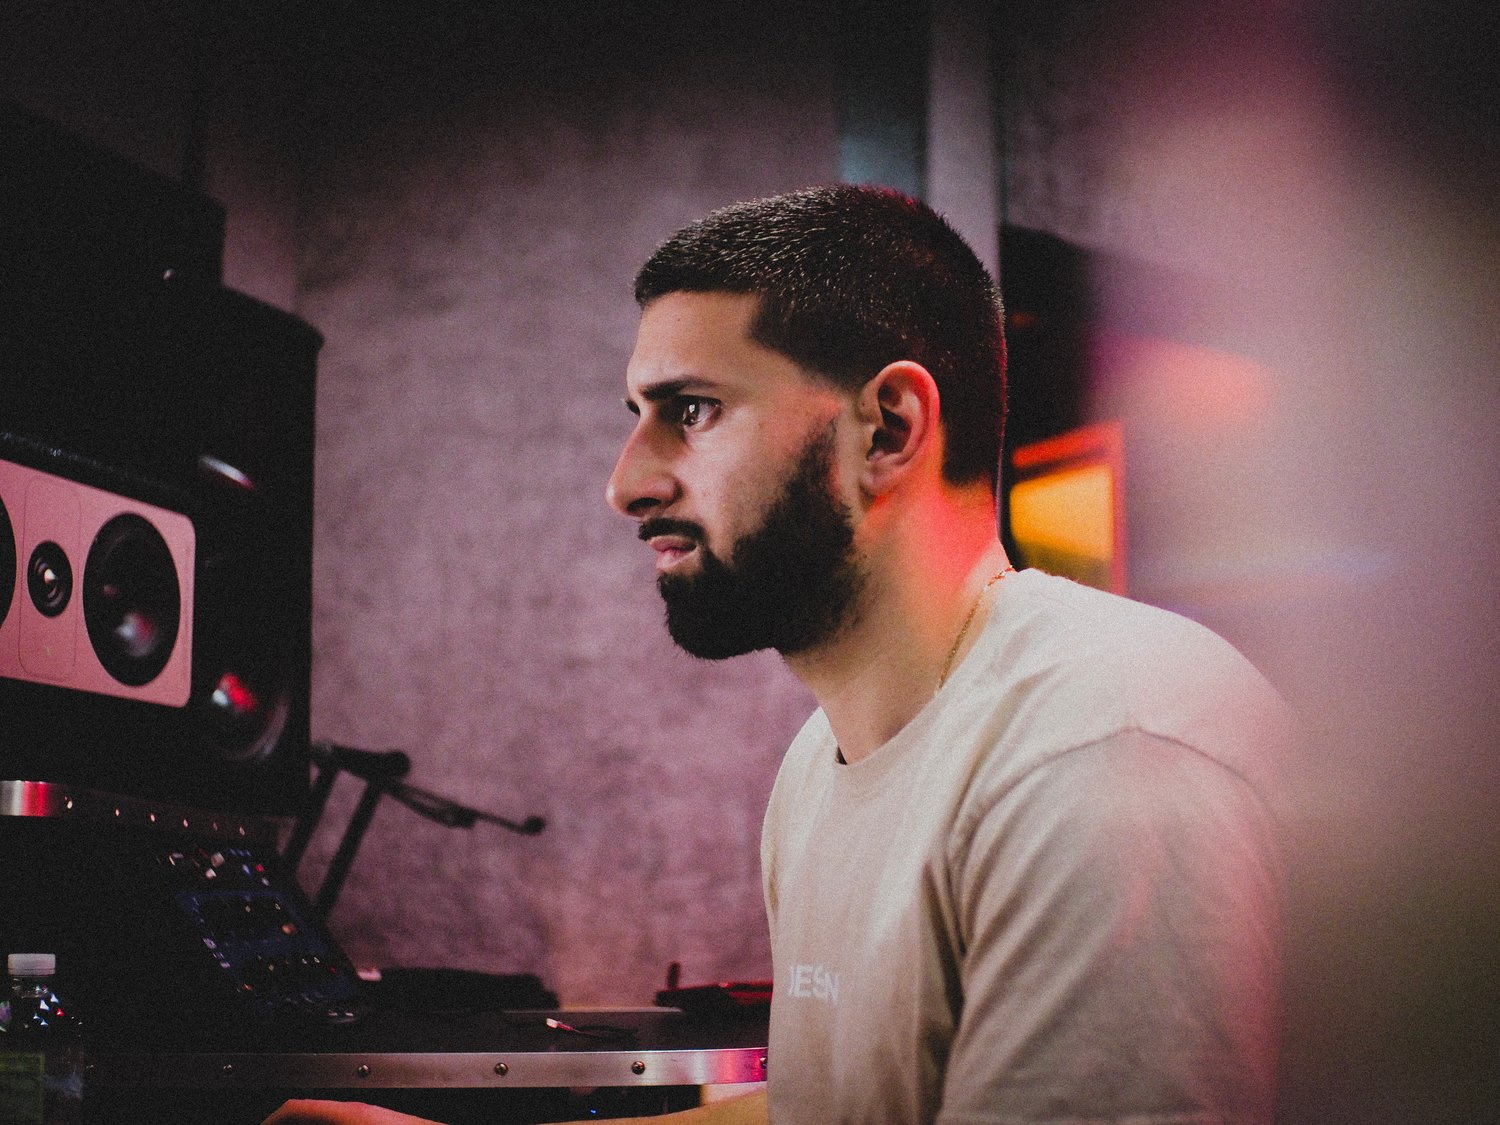 Currently, Dacota is a freelance